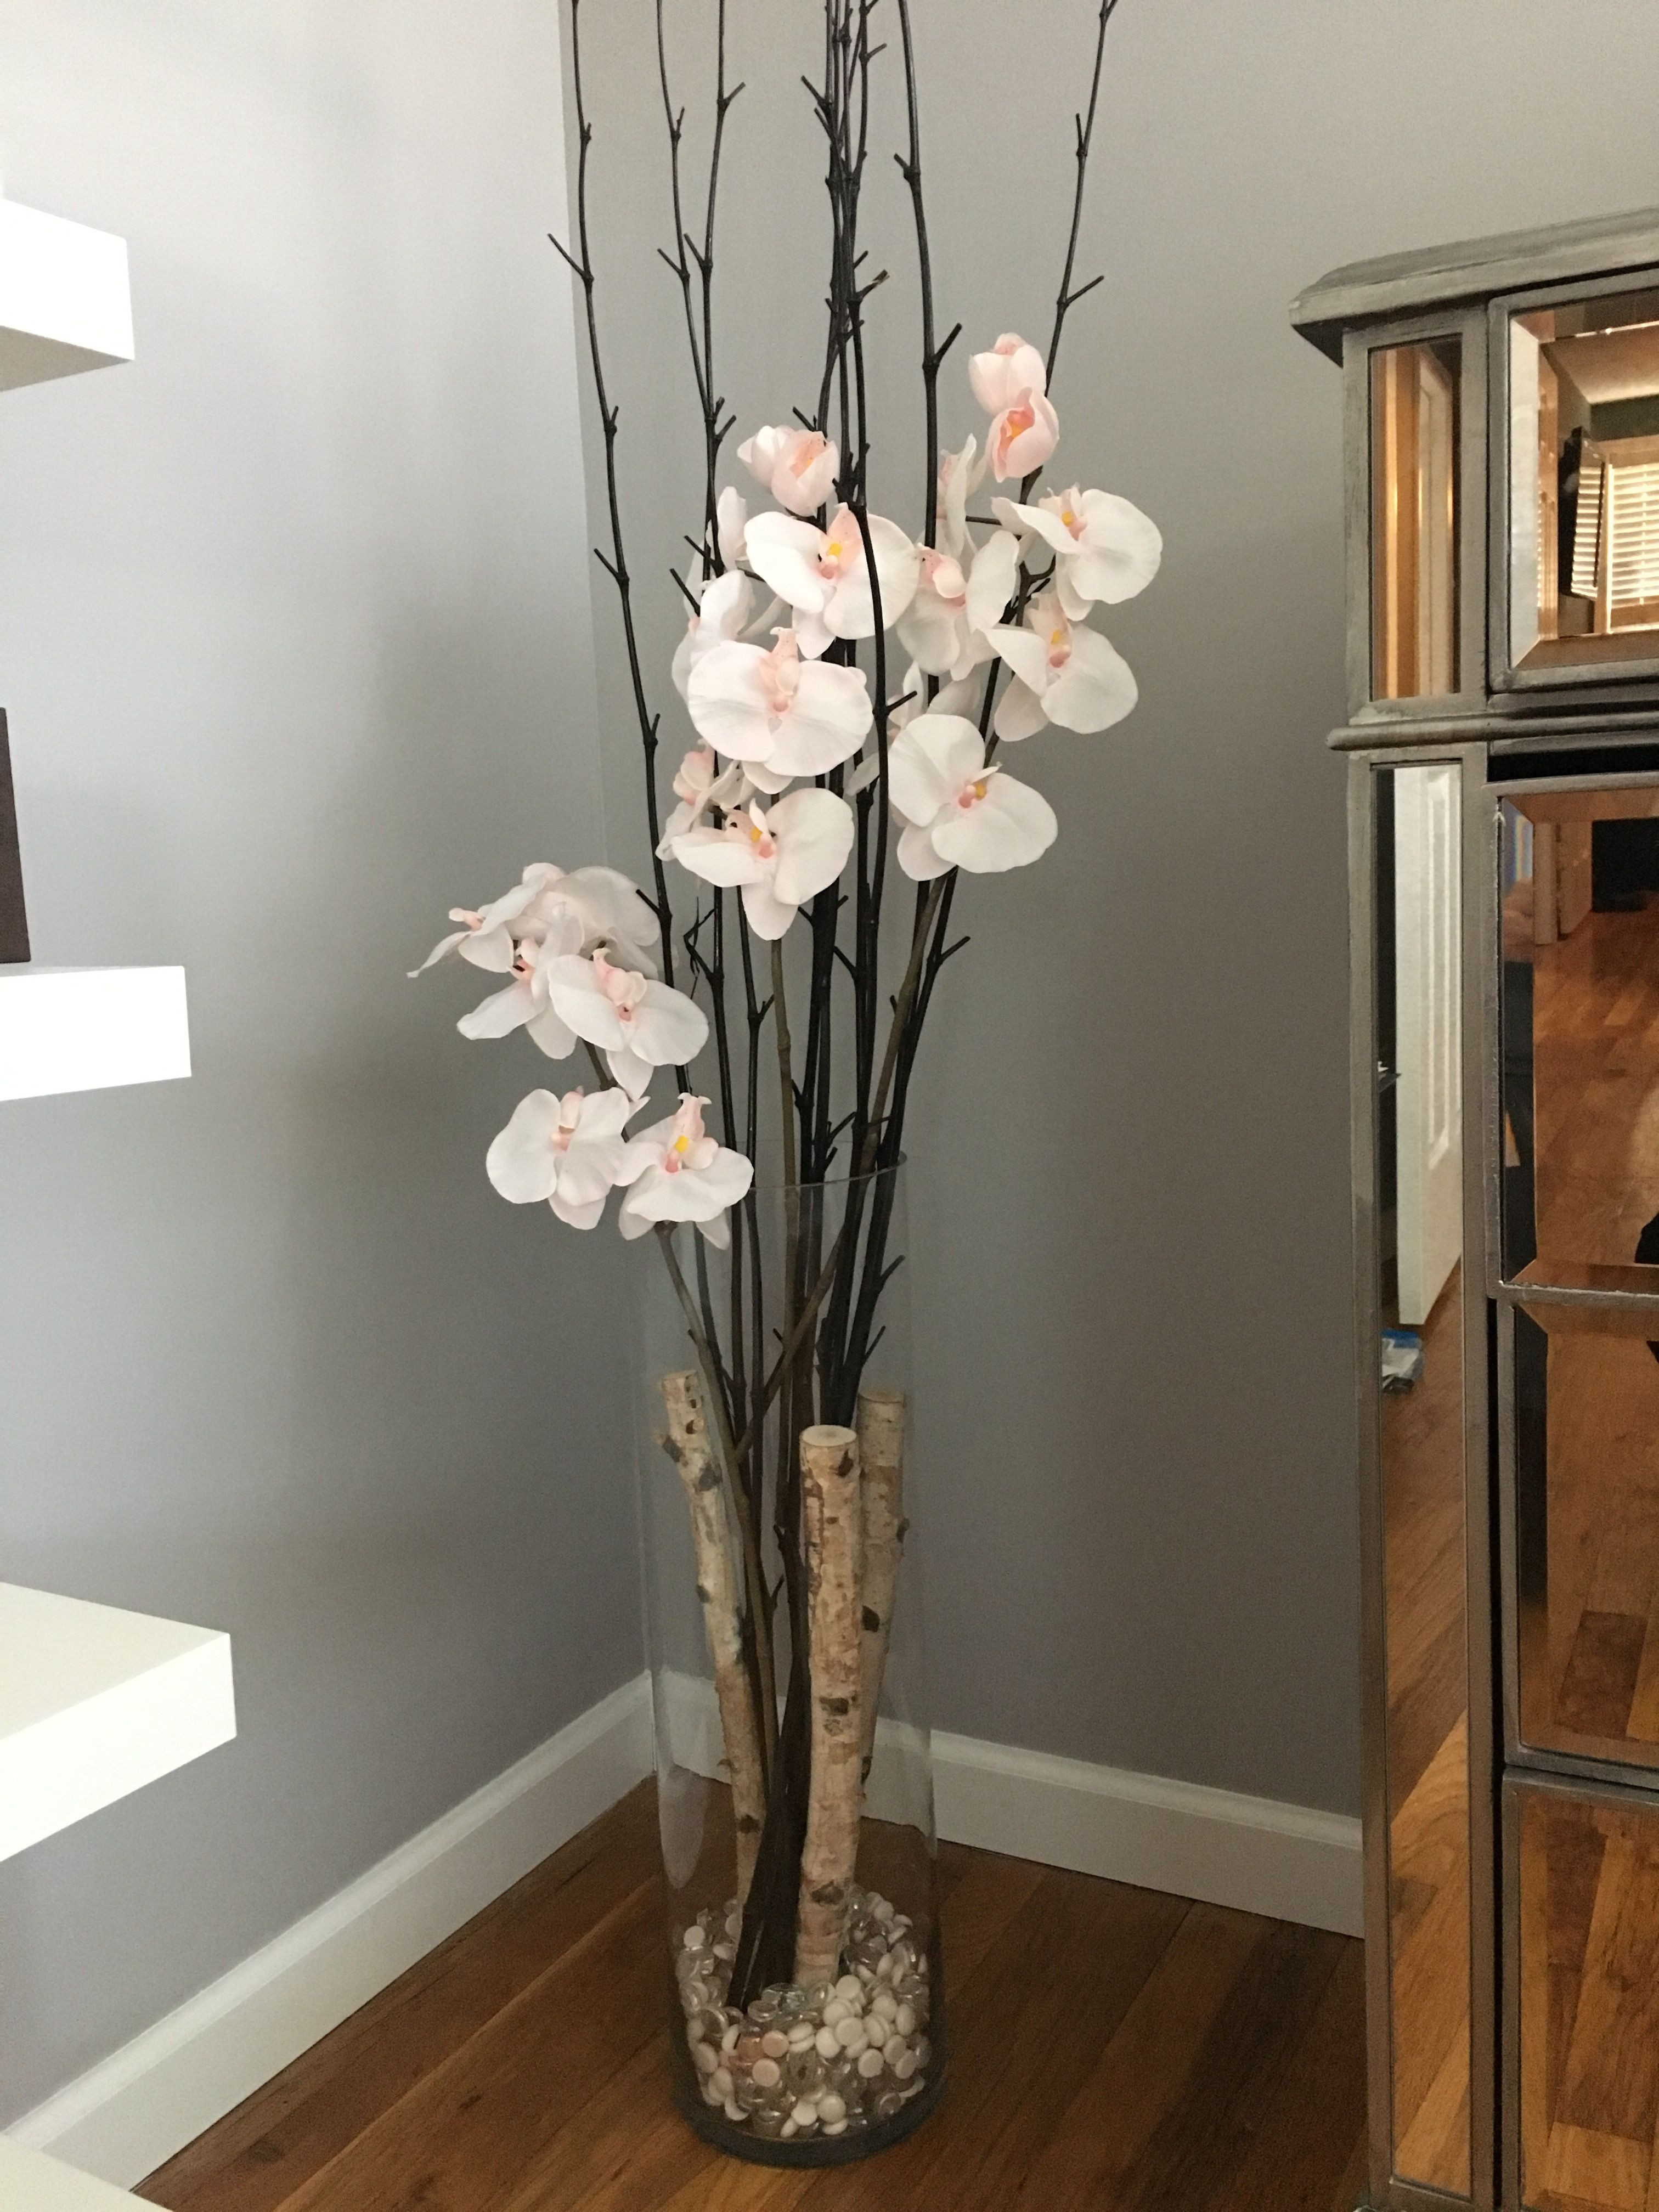 large vase decor of large wood floor vase collection vases flower floor vase with pertaining to large wood floor vase image orchid flower floor vase crafty diy decor of large wood floor